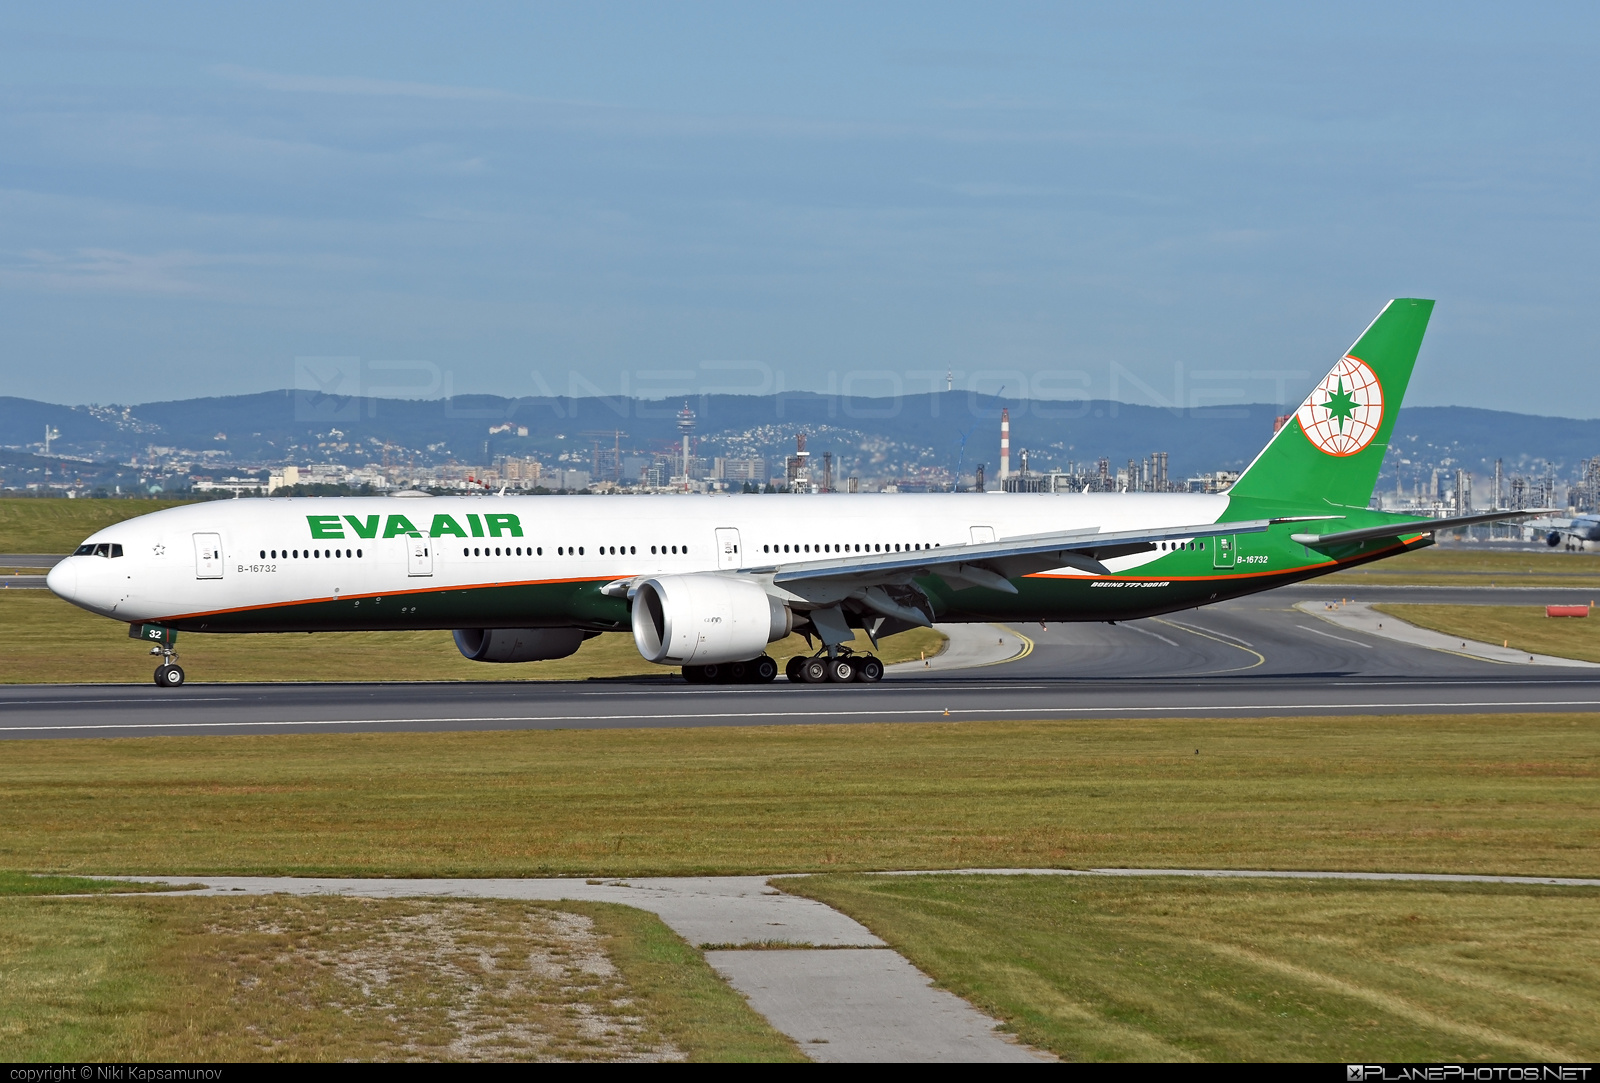 Boeing 777-300ER - B-16732 operated by EVA Air #b777 #b777er #boeing #boeing777 #tripleseven